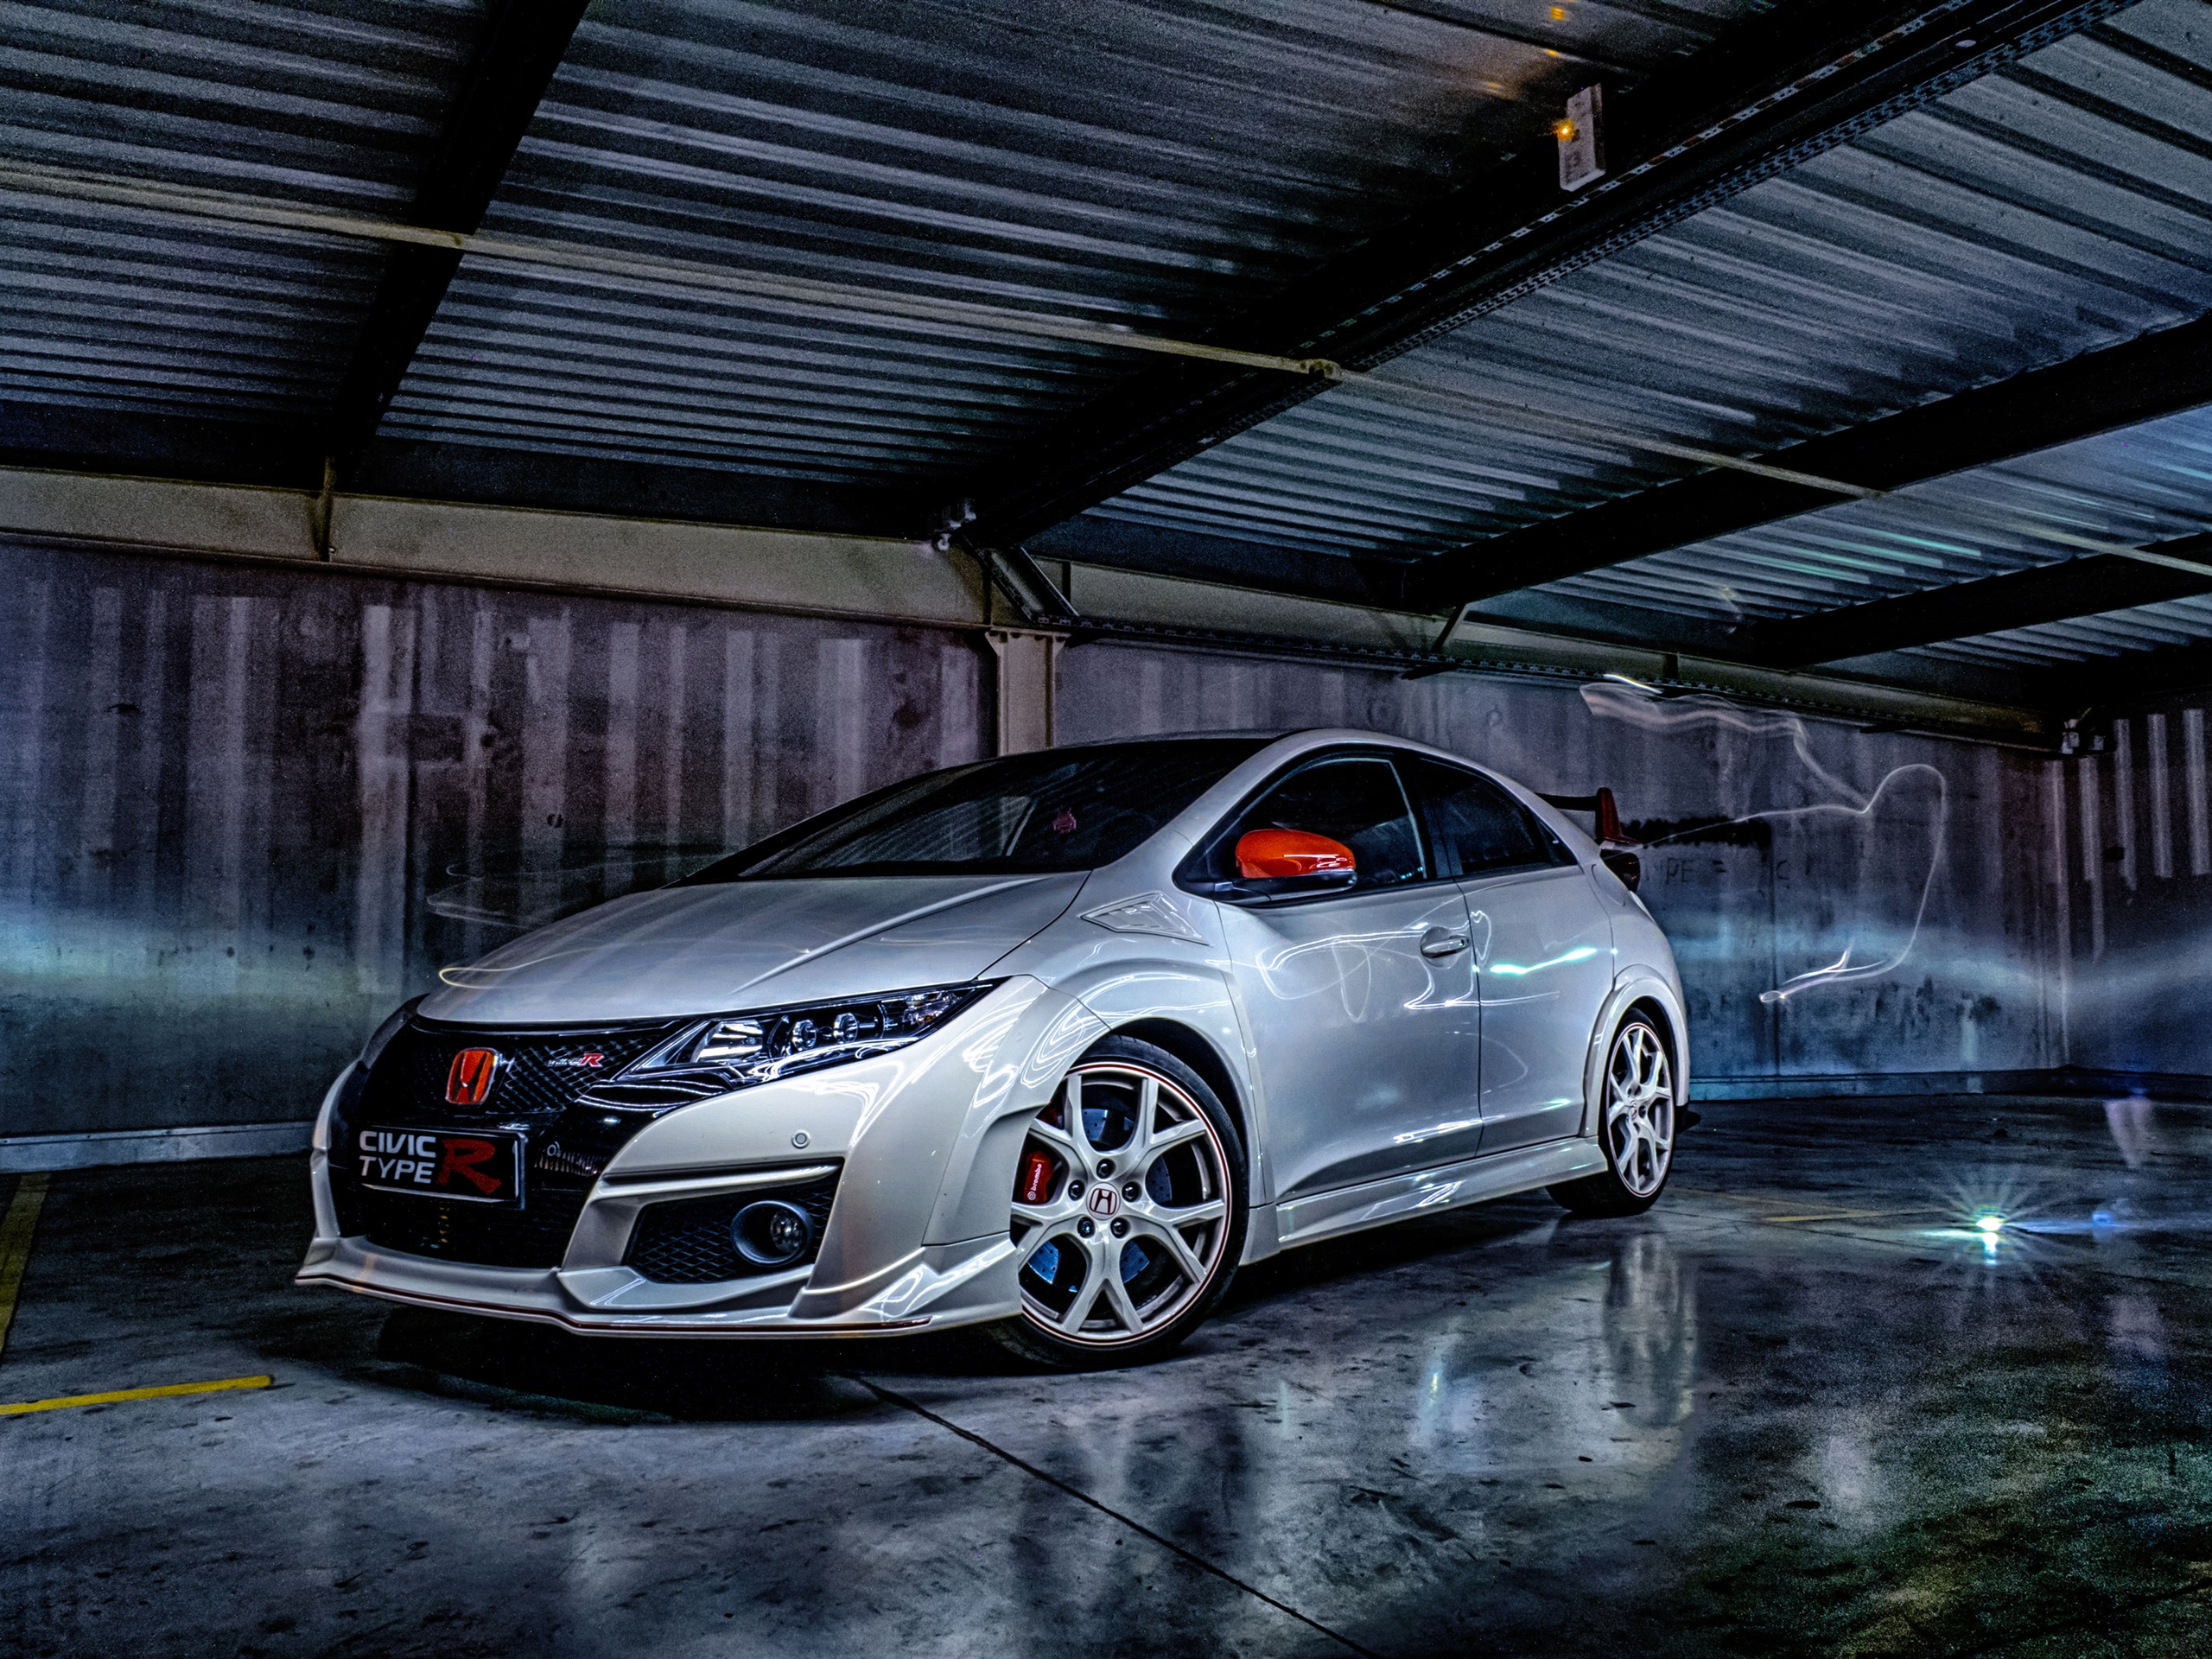 Honda Civic Type R Sports Car 1080x1920 Iphone 8 7 6 6s Plus Wallpaper Background Picture Image